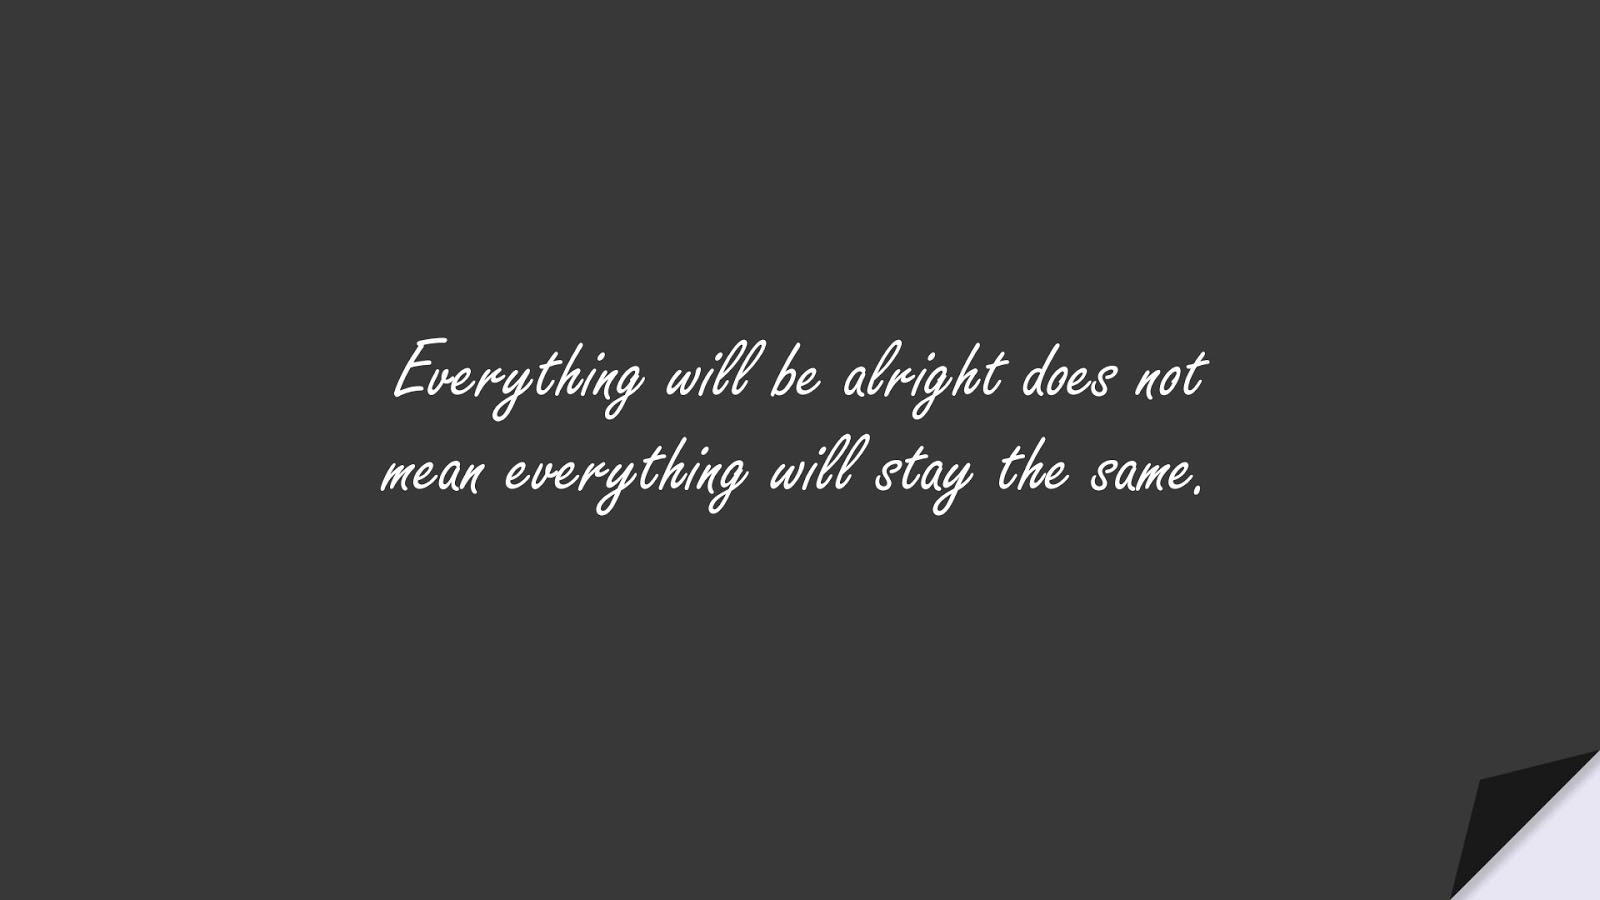 Everything will be alright does not mean everything will stay the same.FALSE